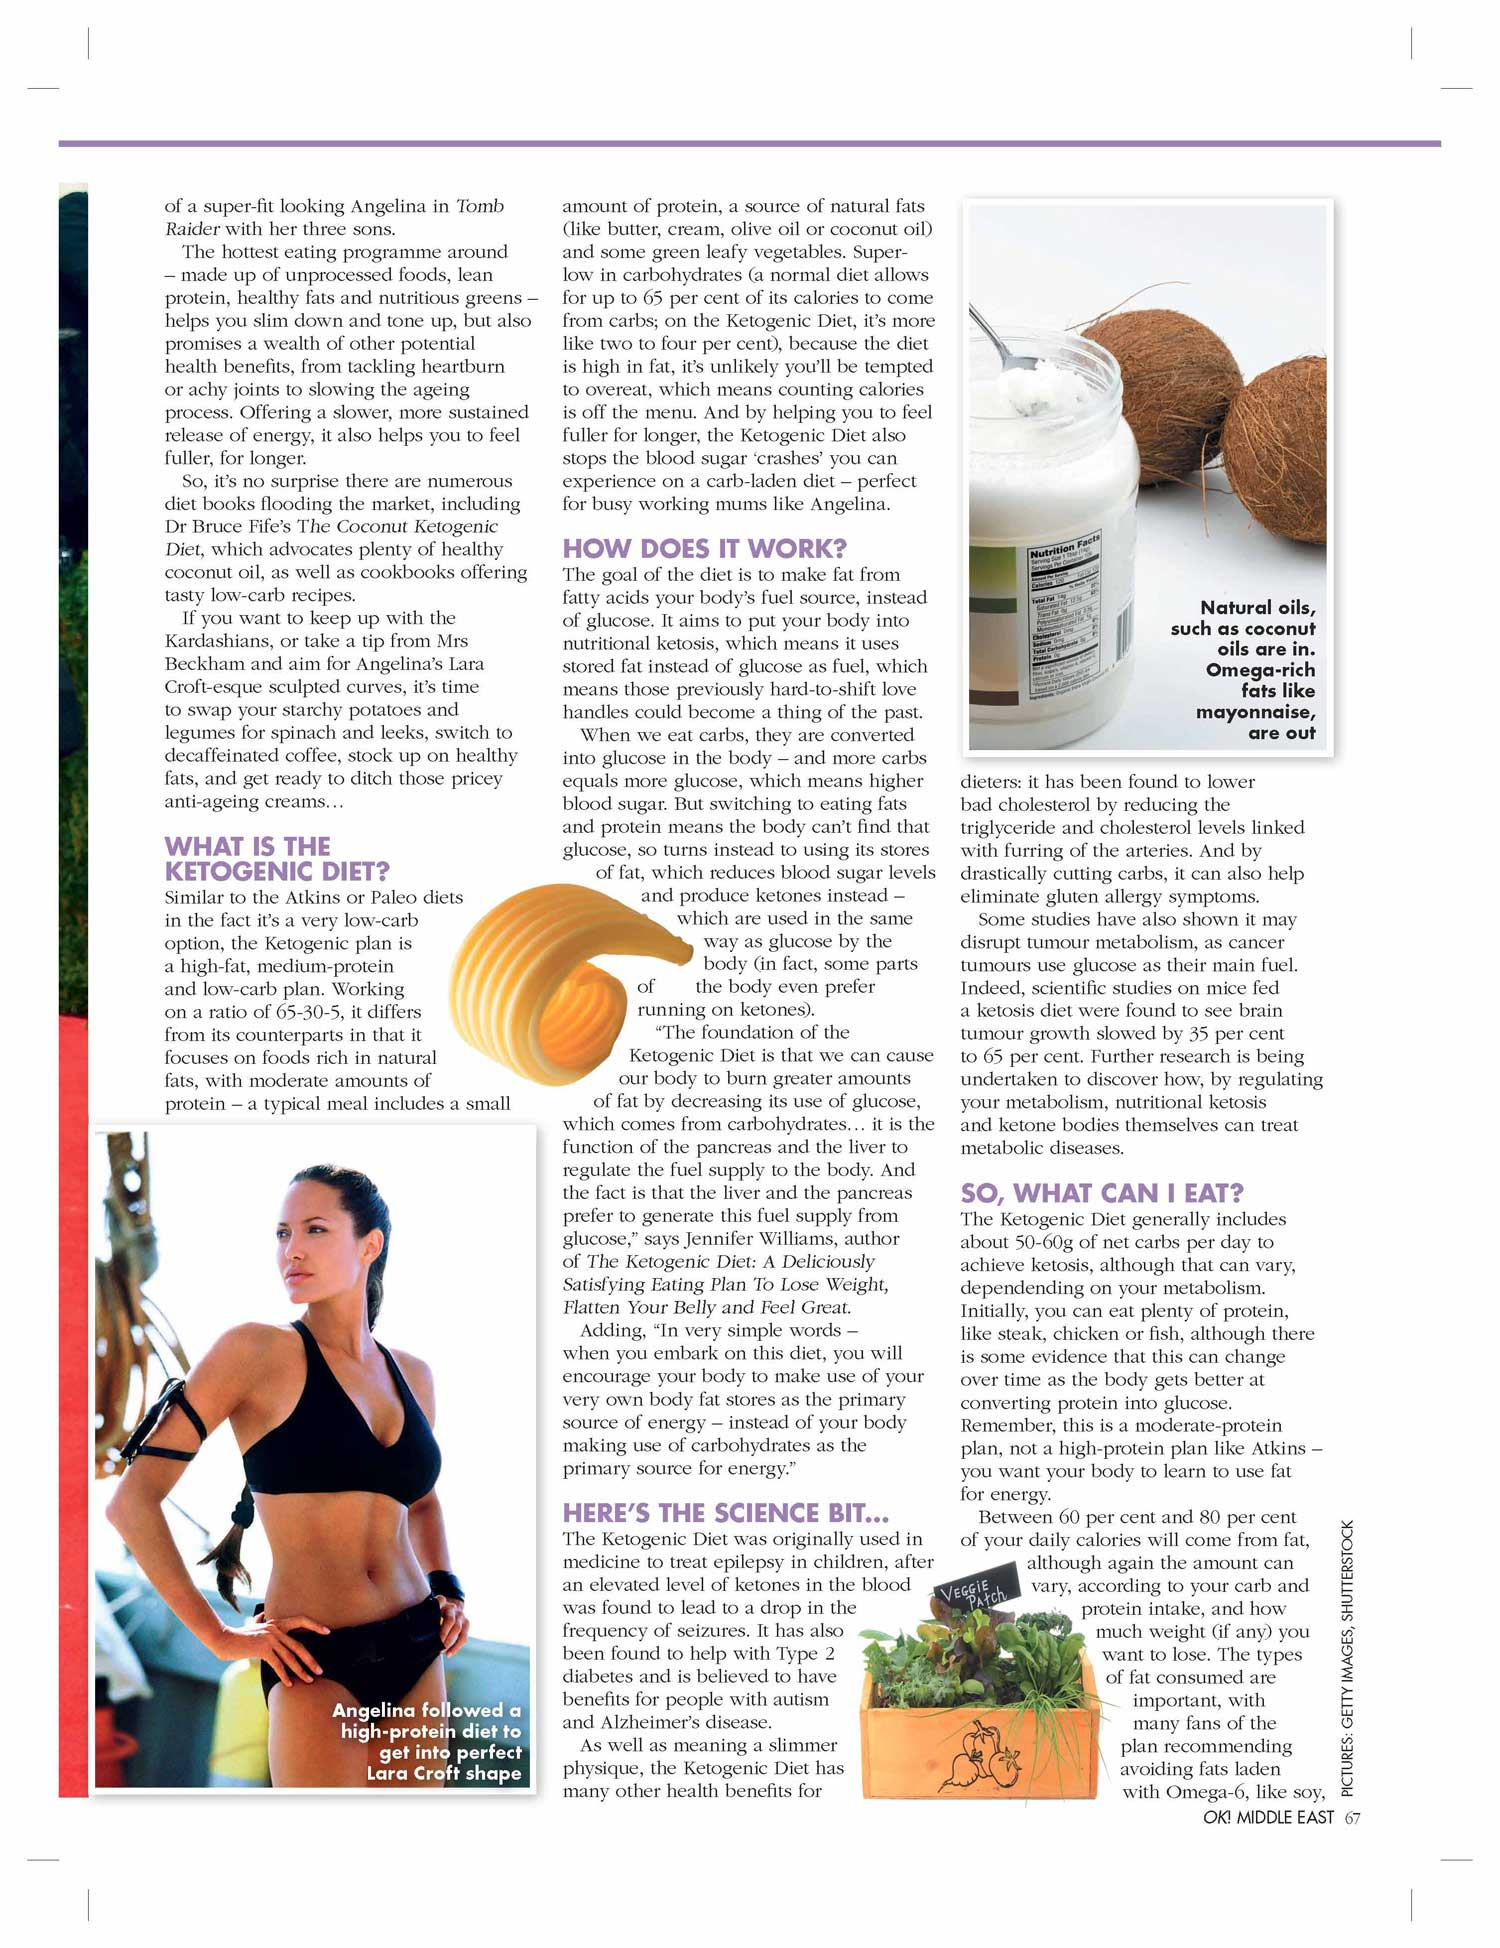 KetoDiet Recipes Featured in OK! Magazine | KetoDiet Blog